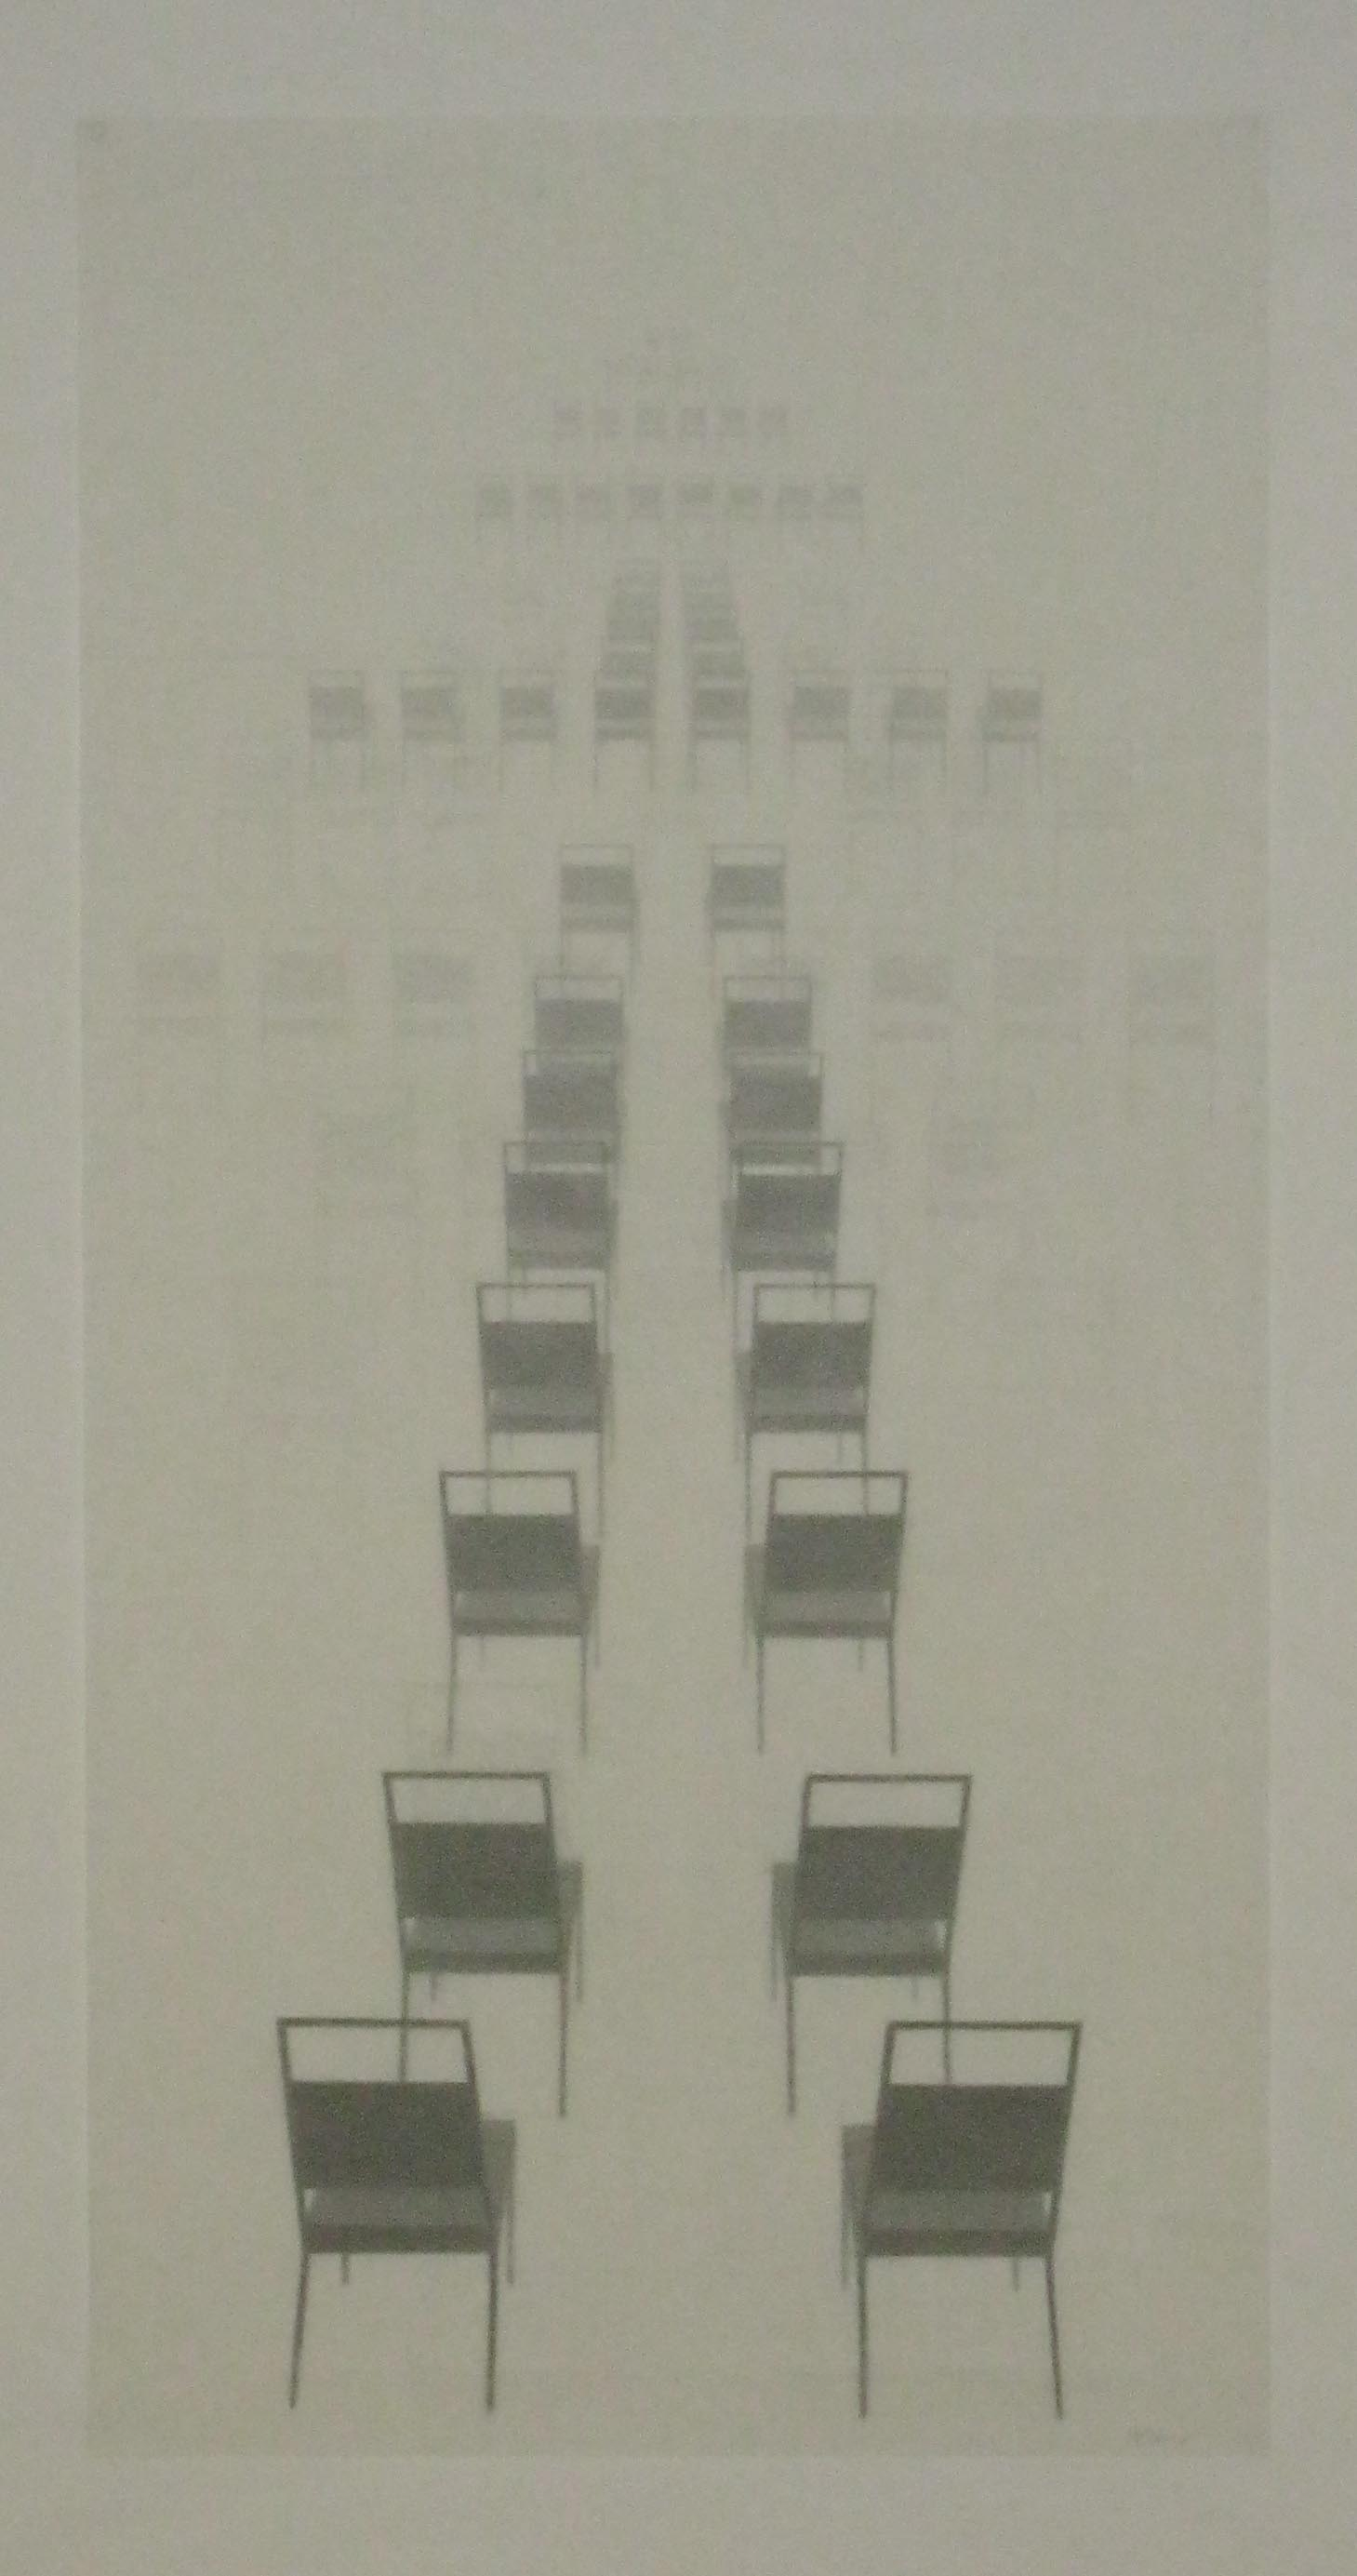 "Follow the Leader graphite pencil on rice paper, 18"" x 9"", 2012"